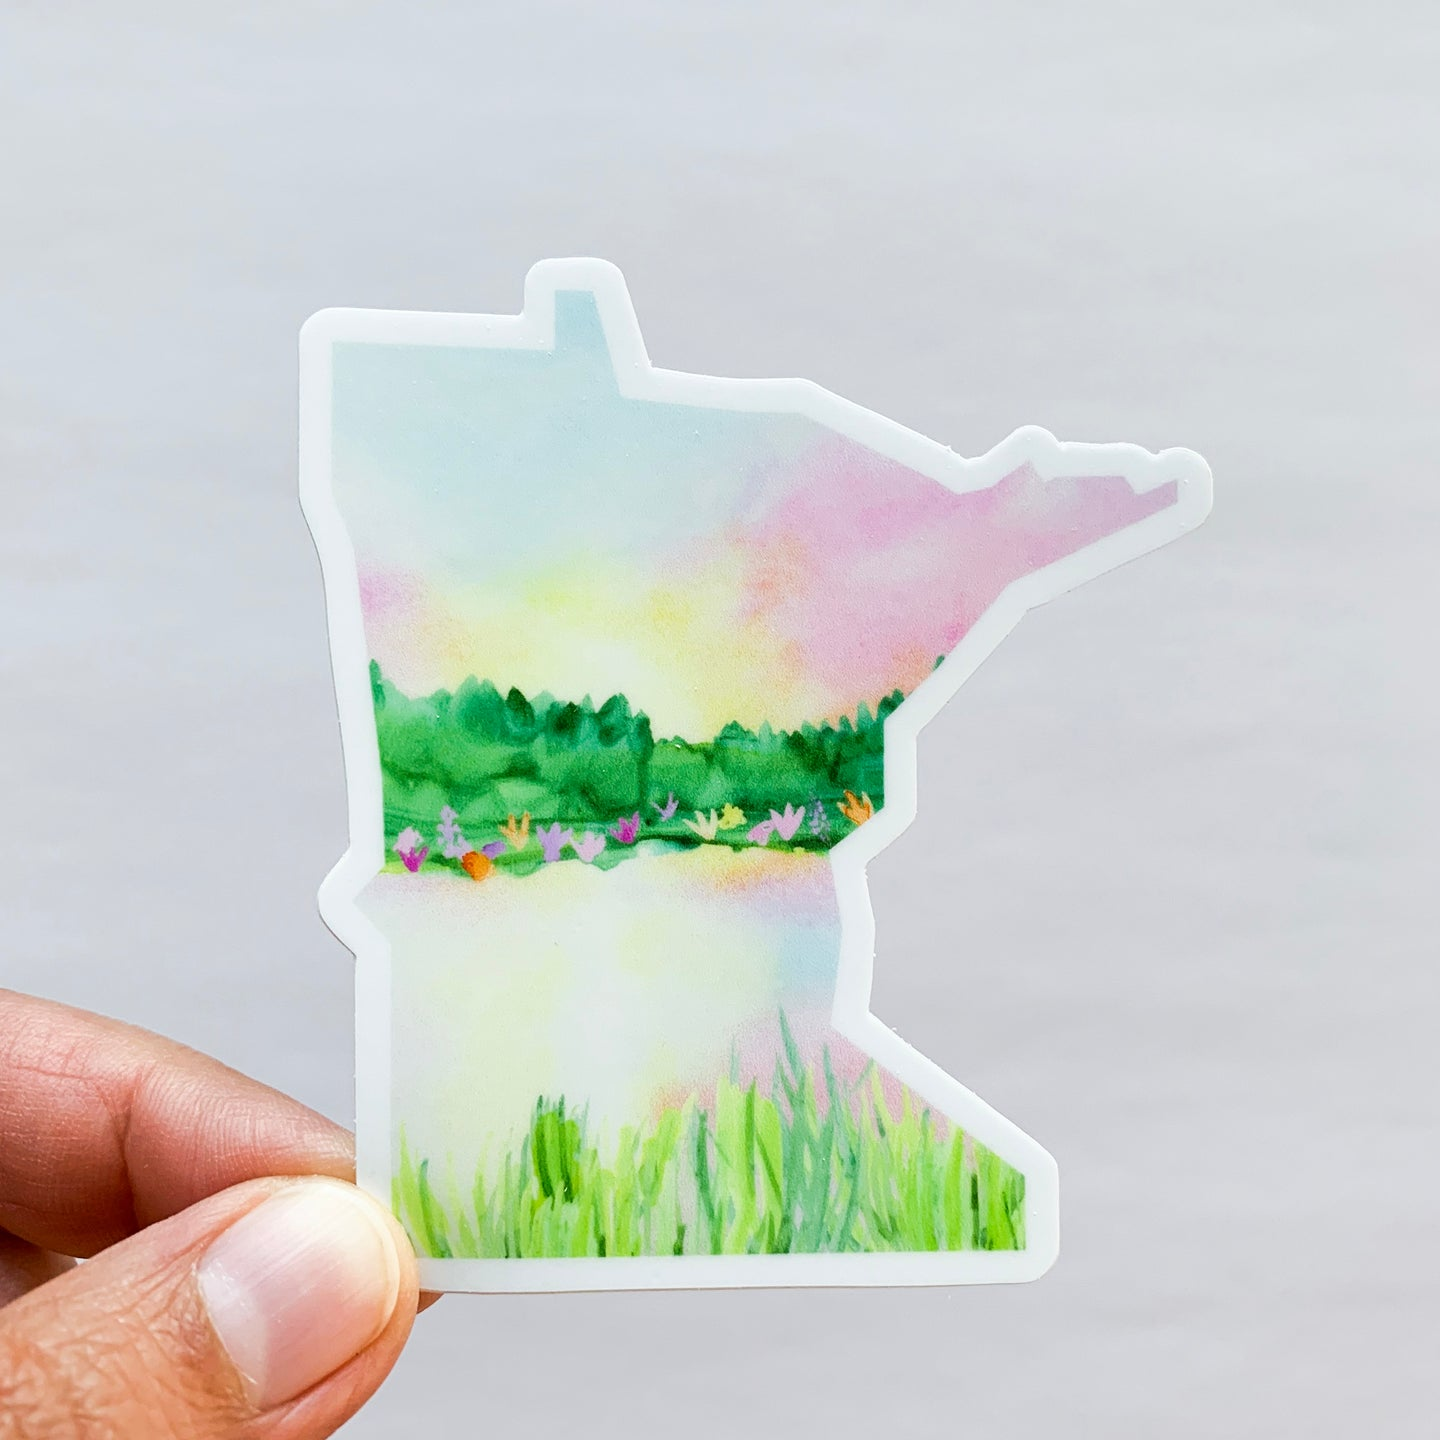 Minnesota State Sunset Sticker Decal